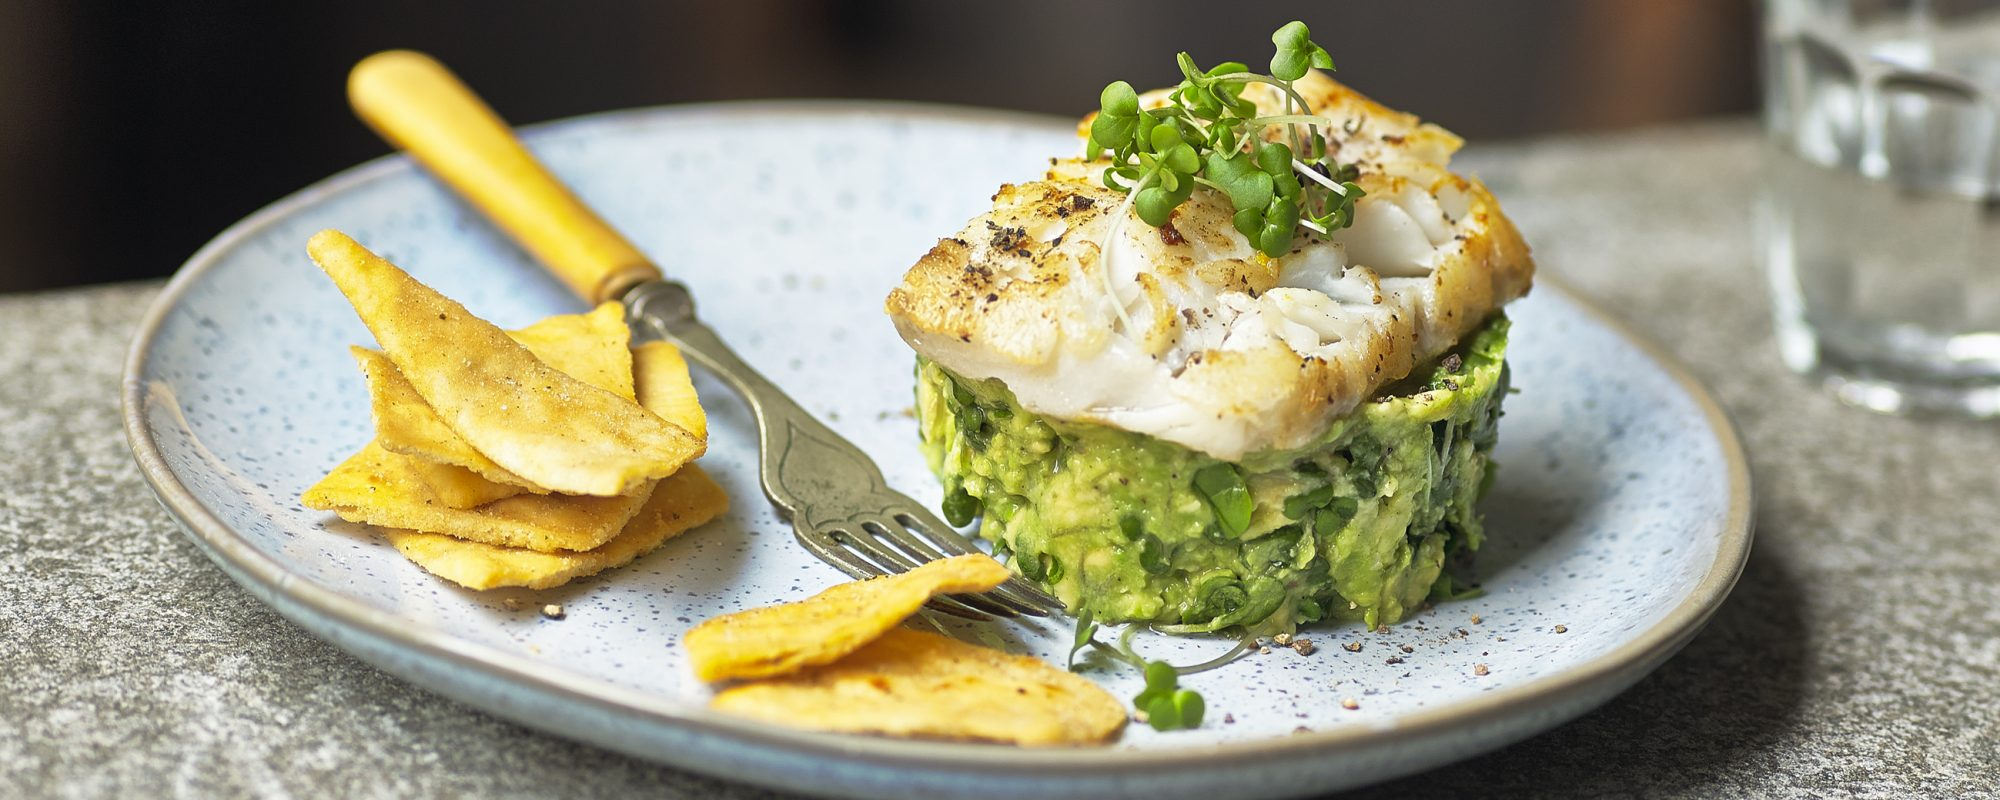 Salad Cress, Avocado Tartare with Pan Fried Cod